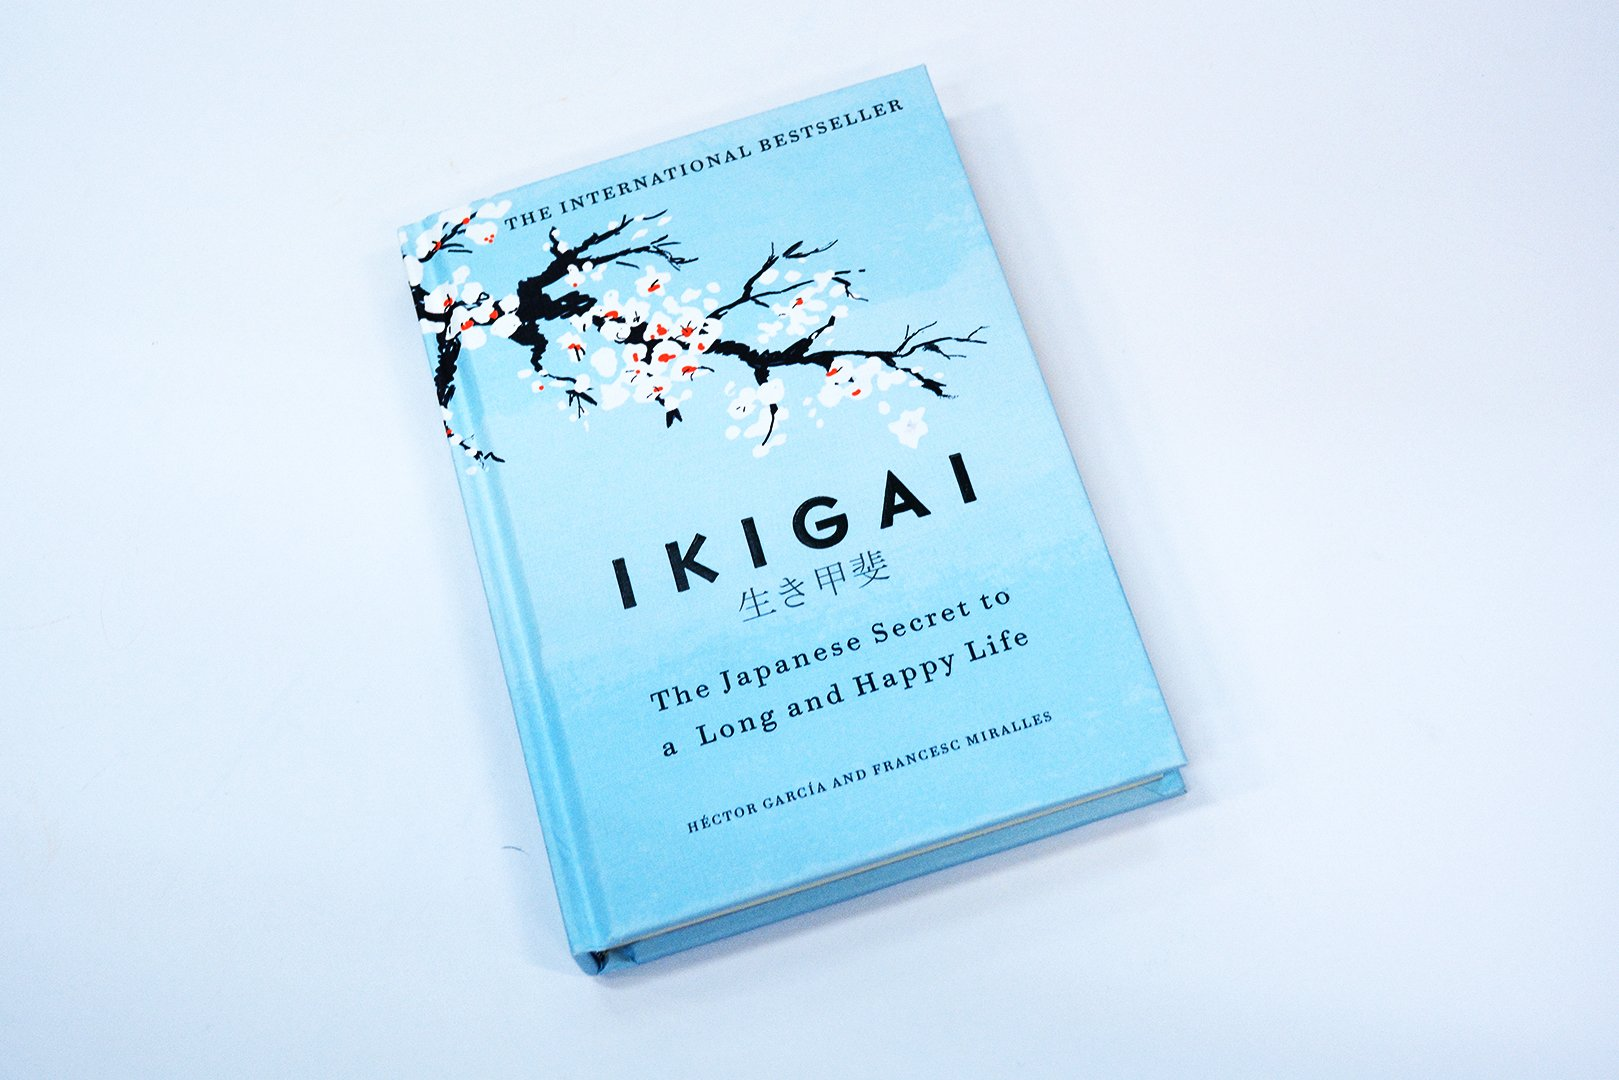 Ikigai: The Japanese Secret To A Happy Life And One of The Best Audiobooks